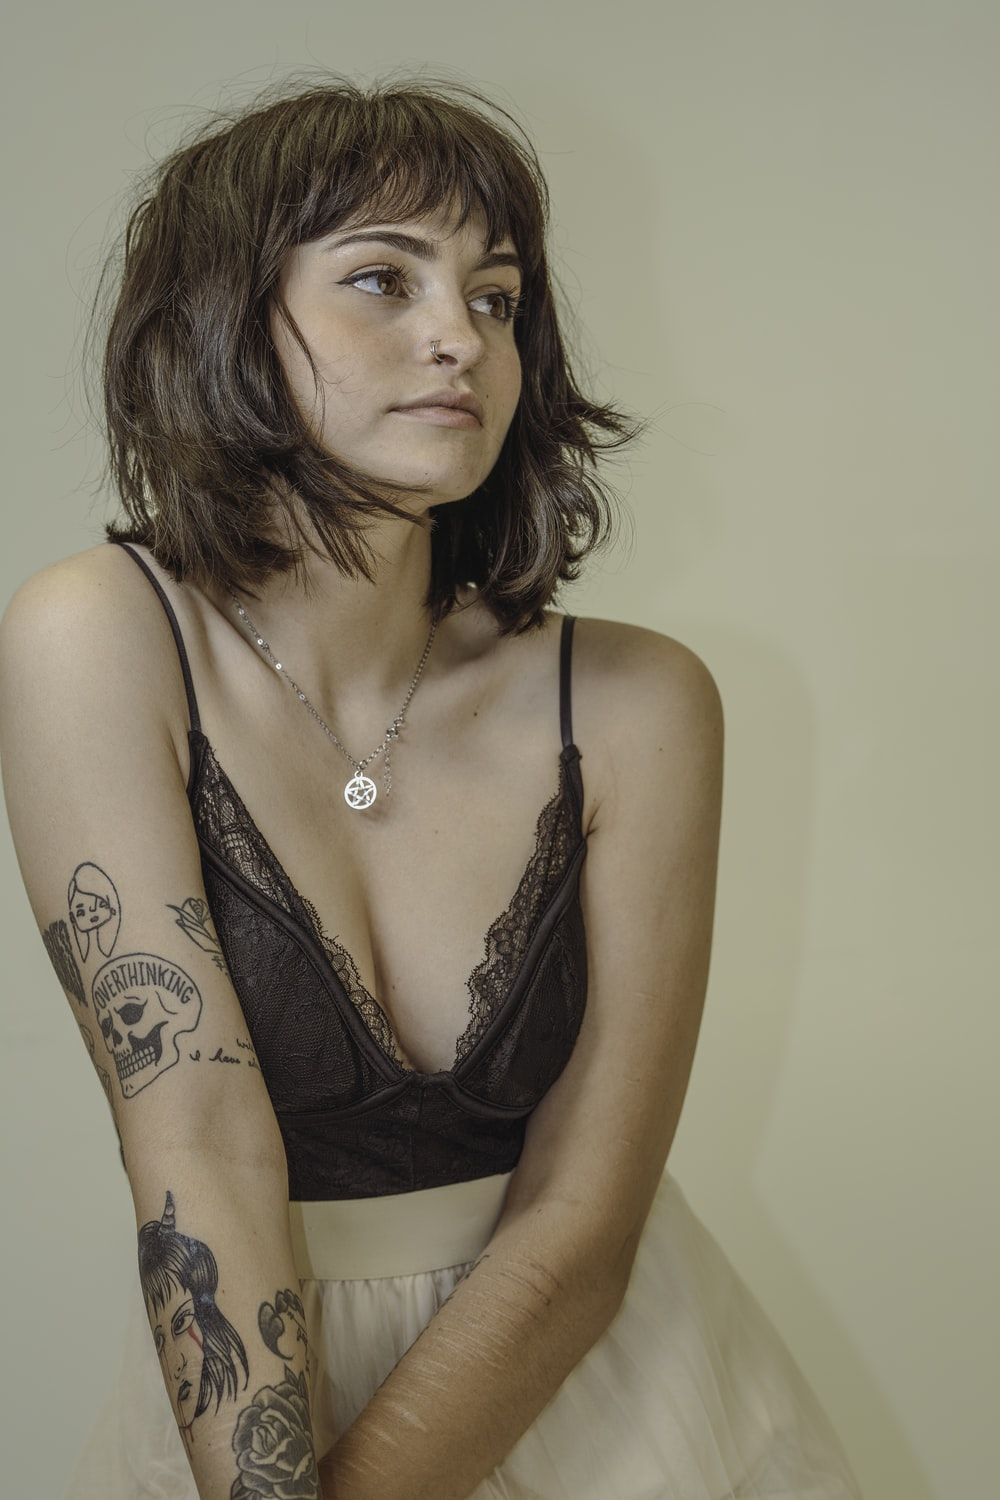 woman in black brassiere with tattoo on chest